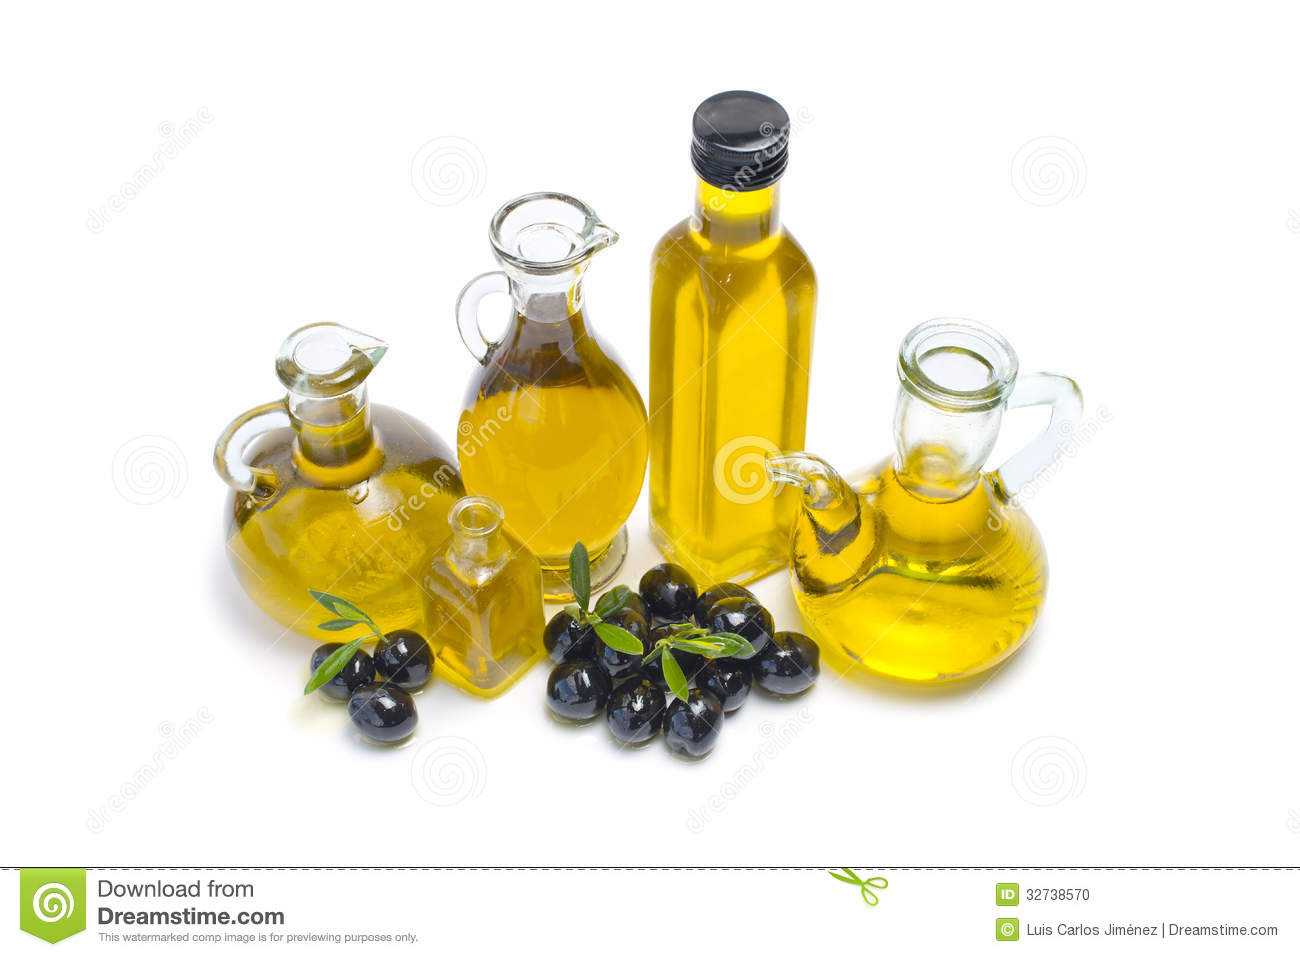 Starting a Vegetable Oil Production Company – Sample Business Plan Template